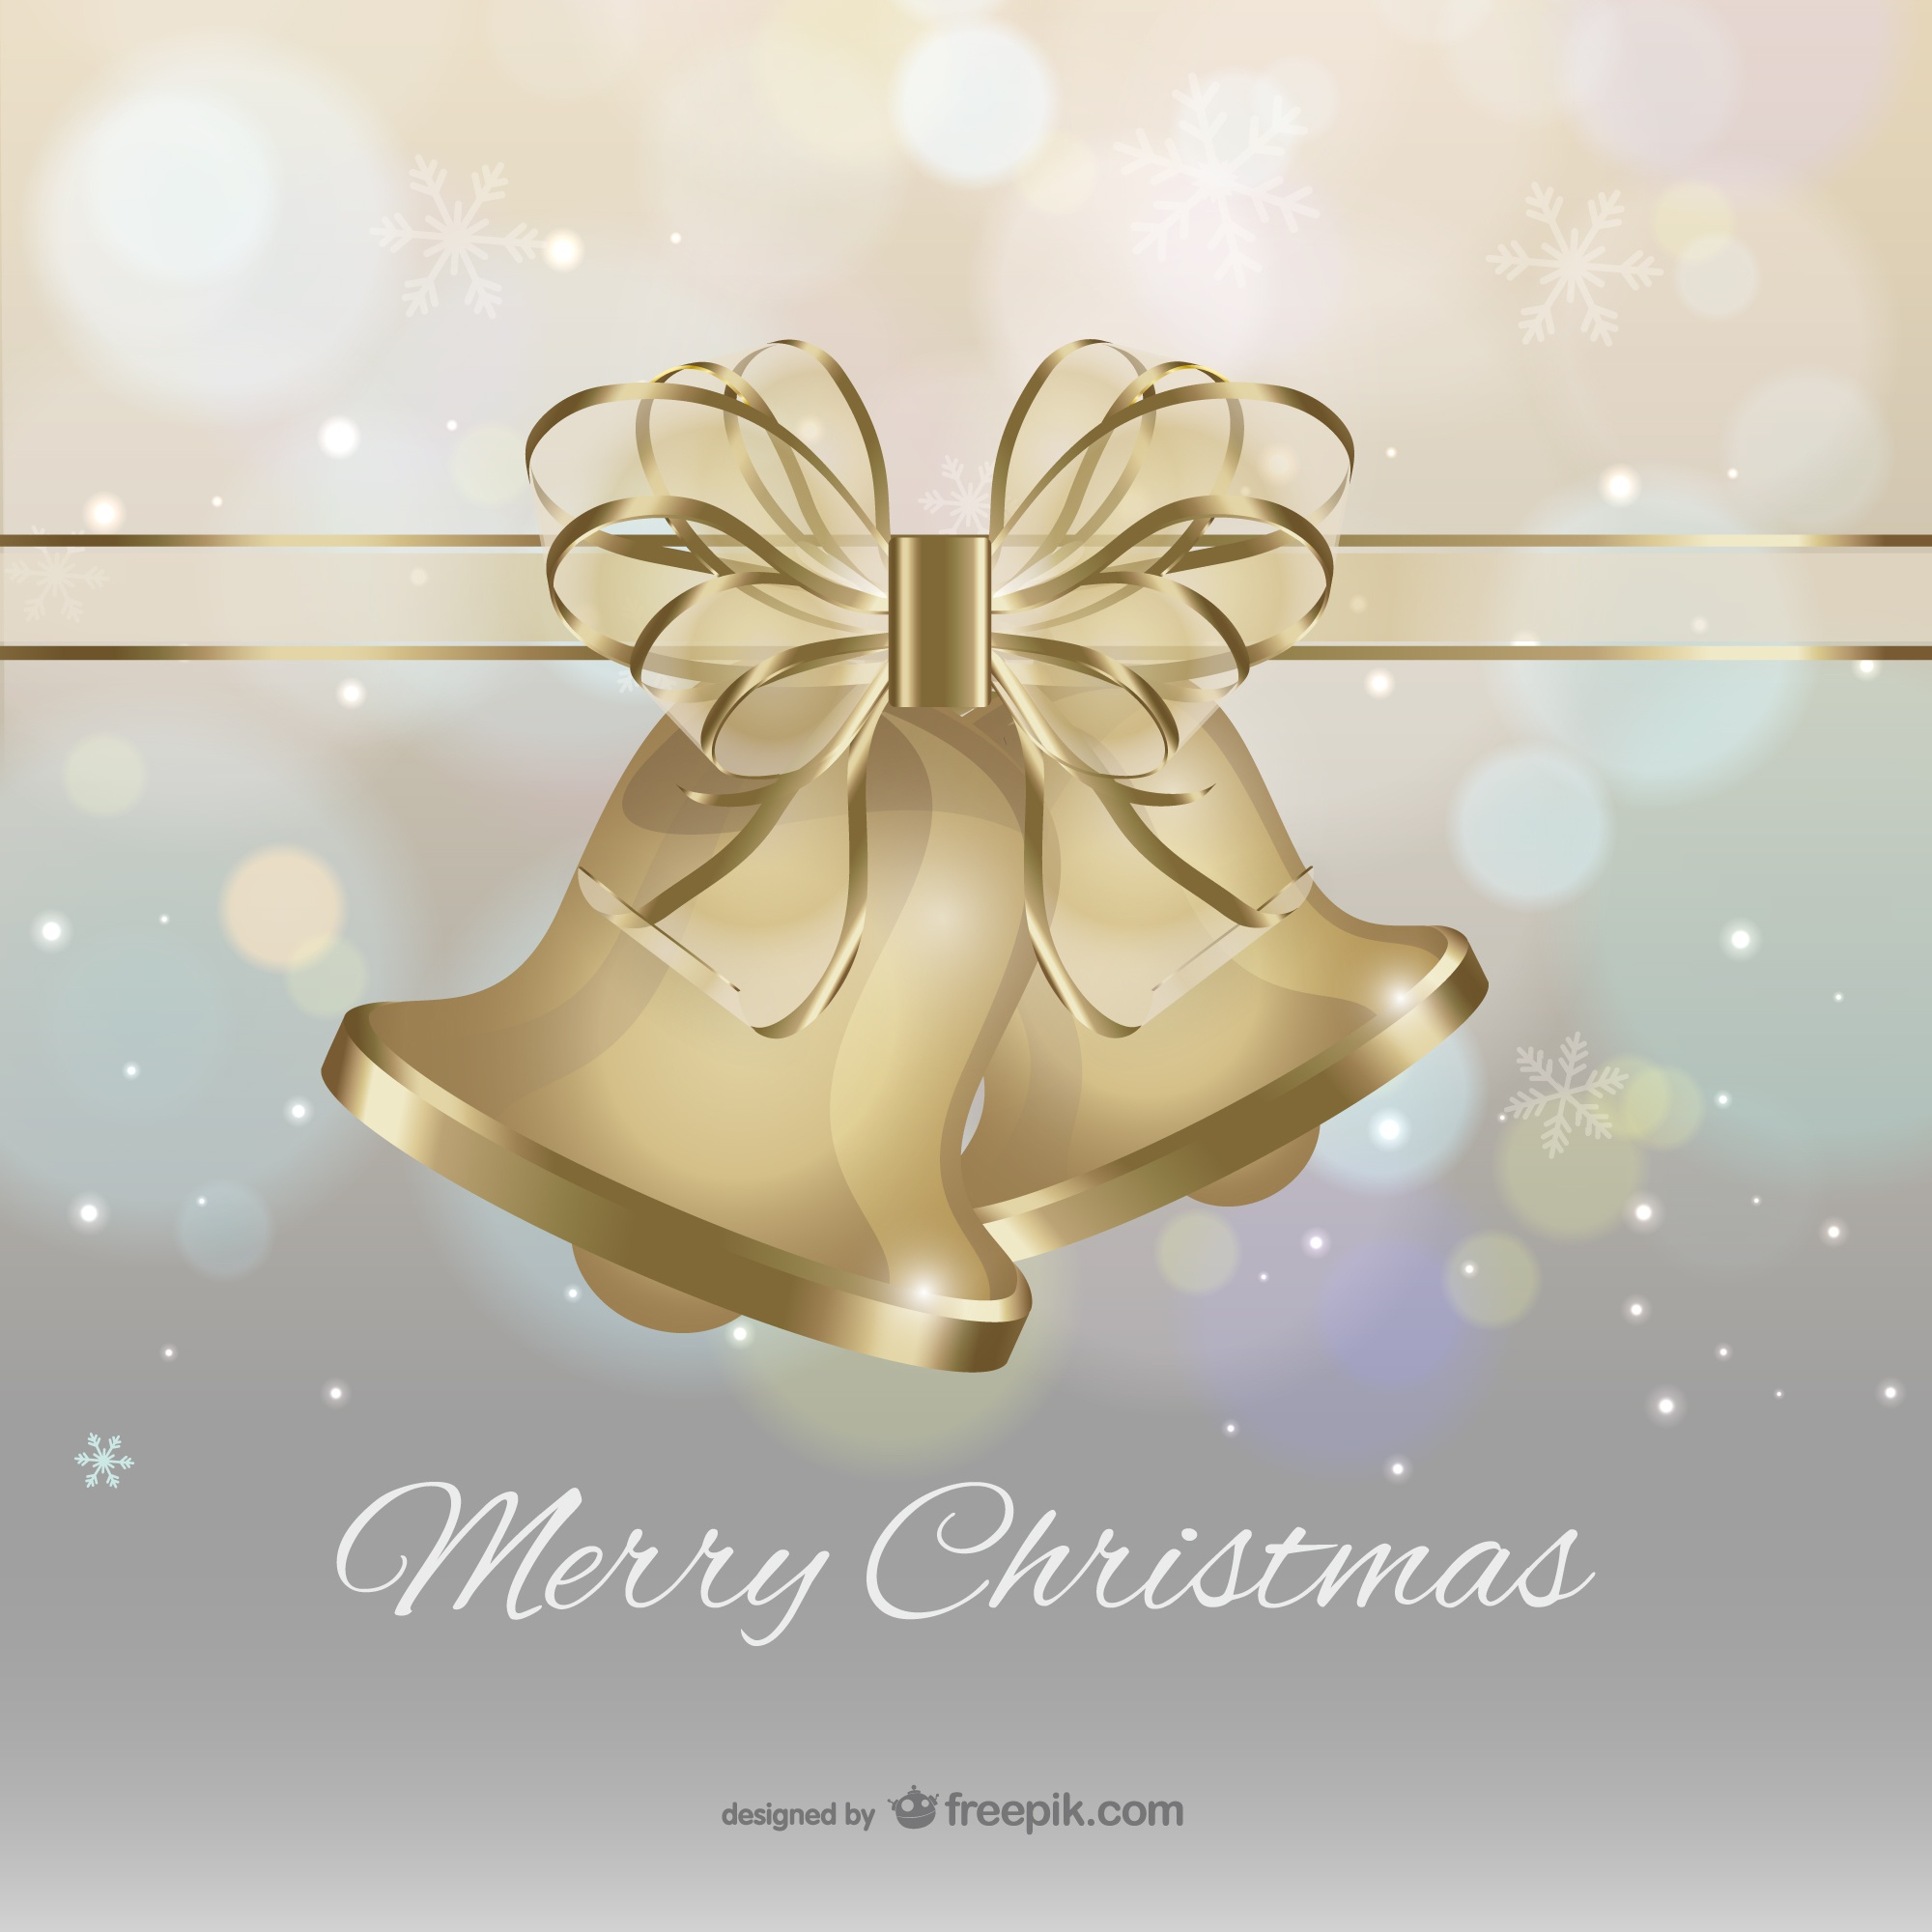 Merry Christmas with golden bells and bow vector